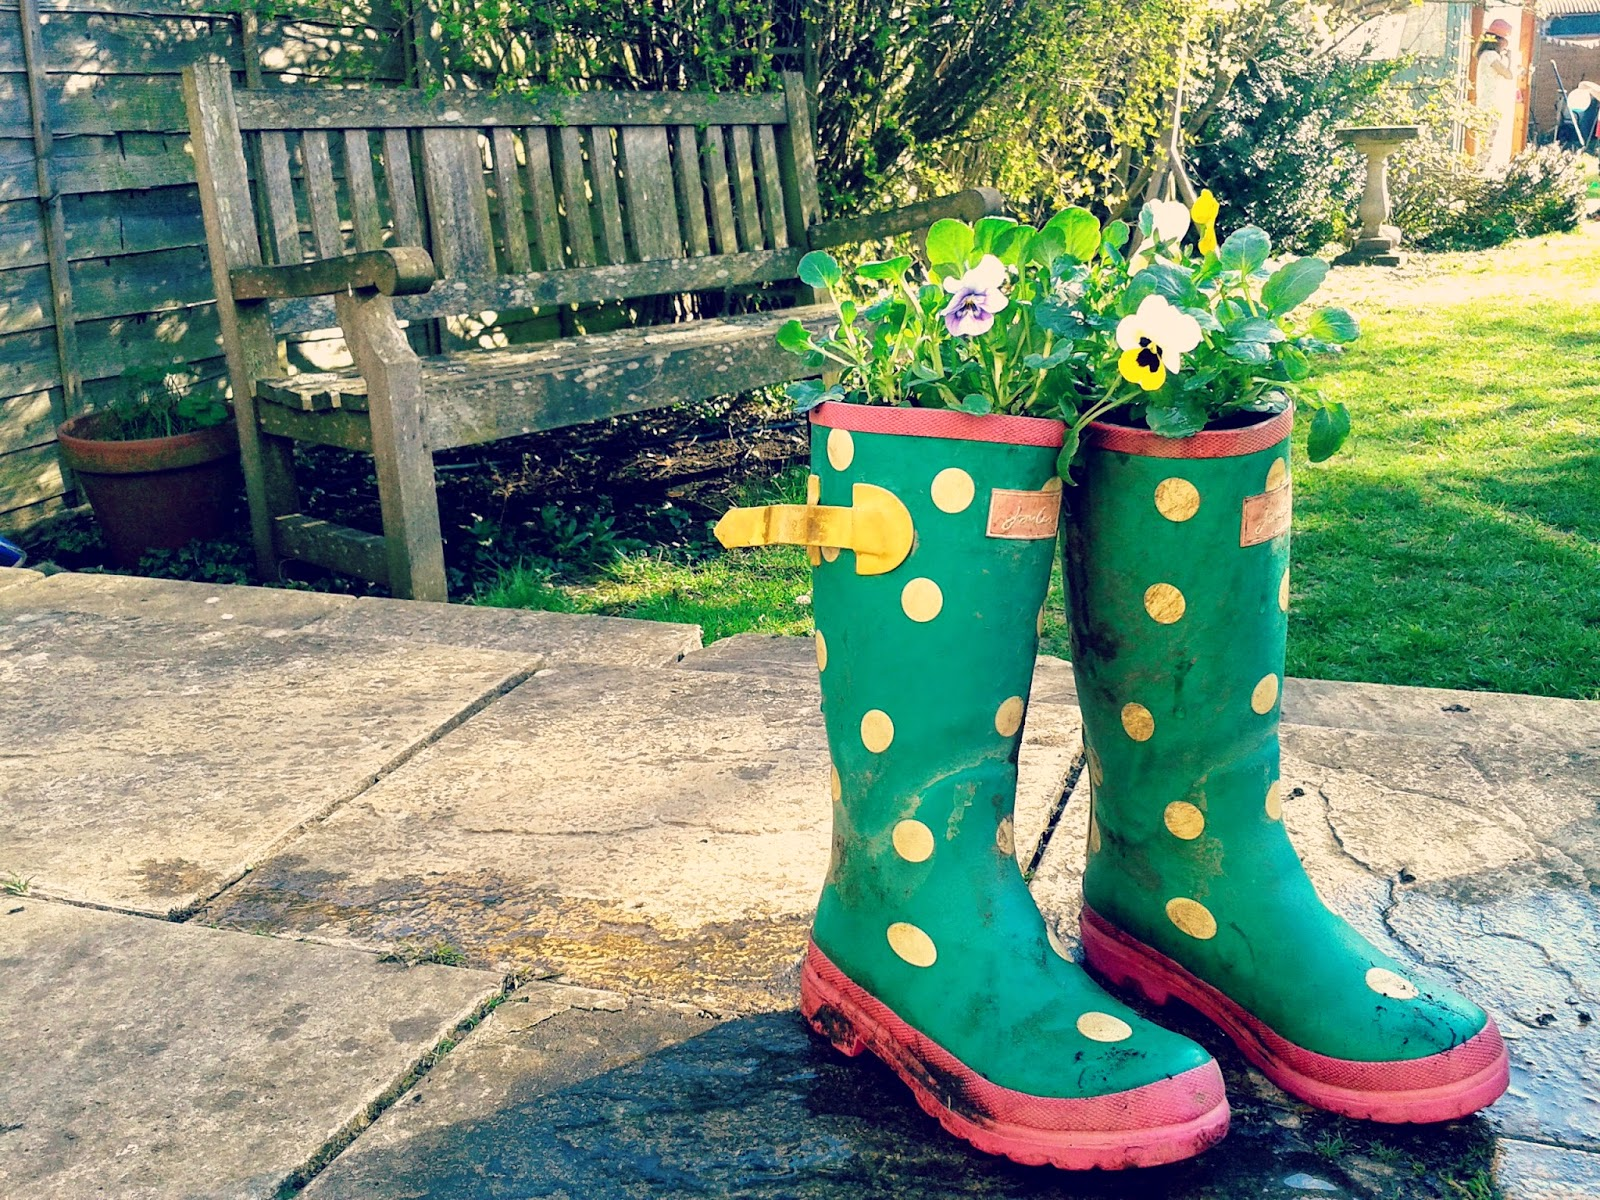 Project 365 day 96 - Upcycled wellies // 76sunflowers